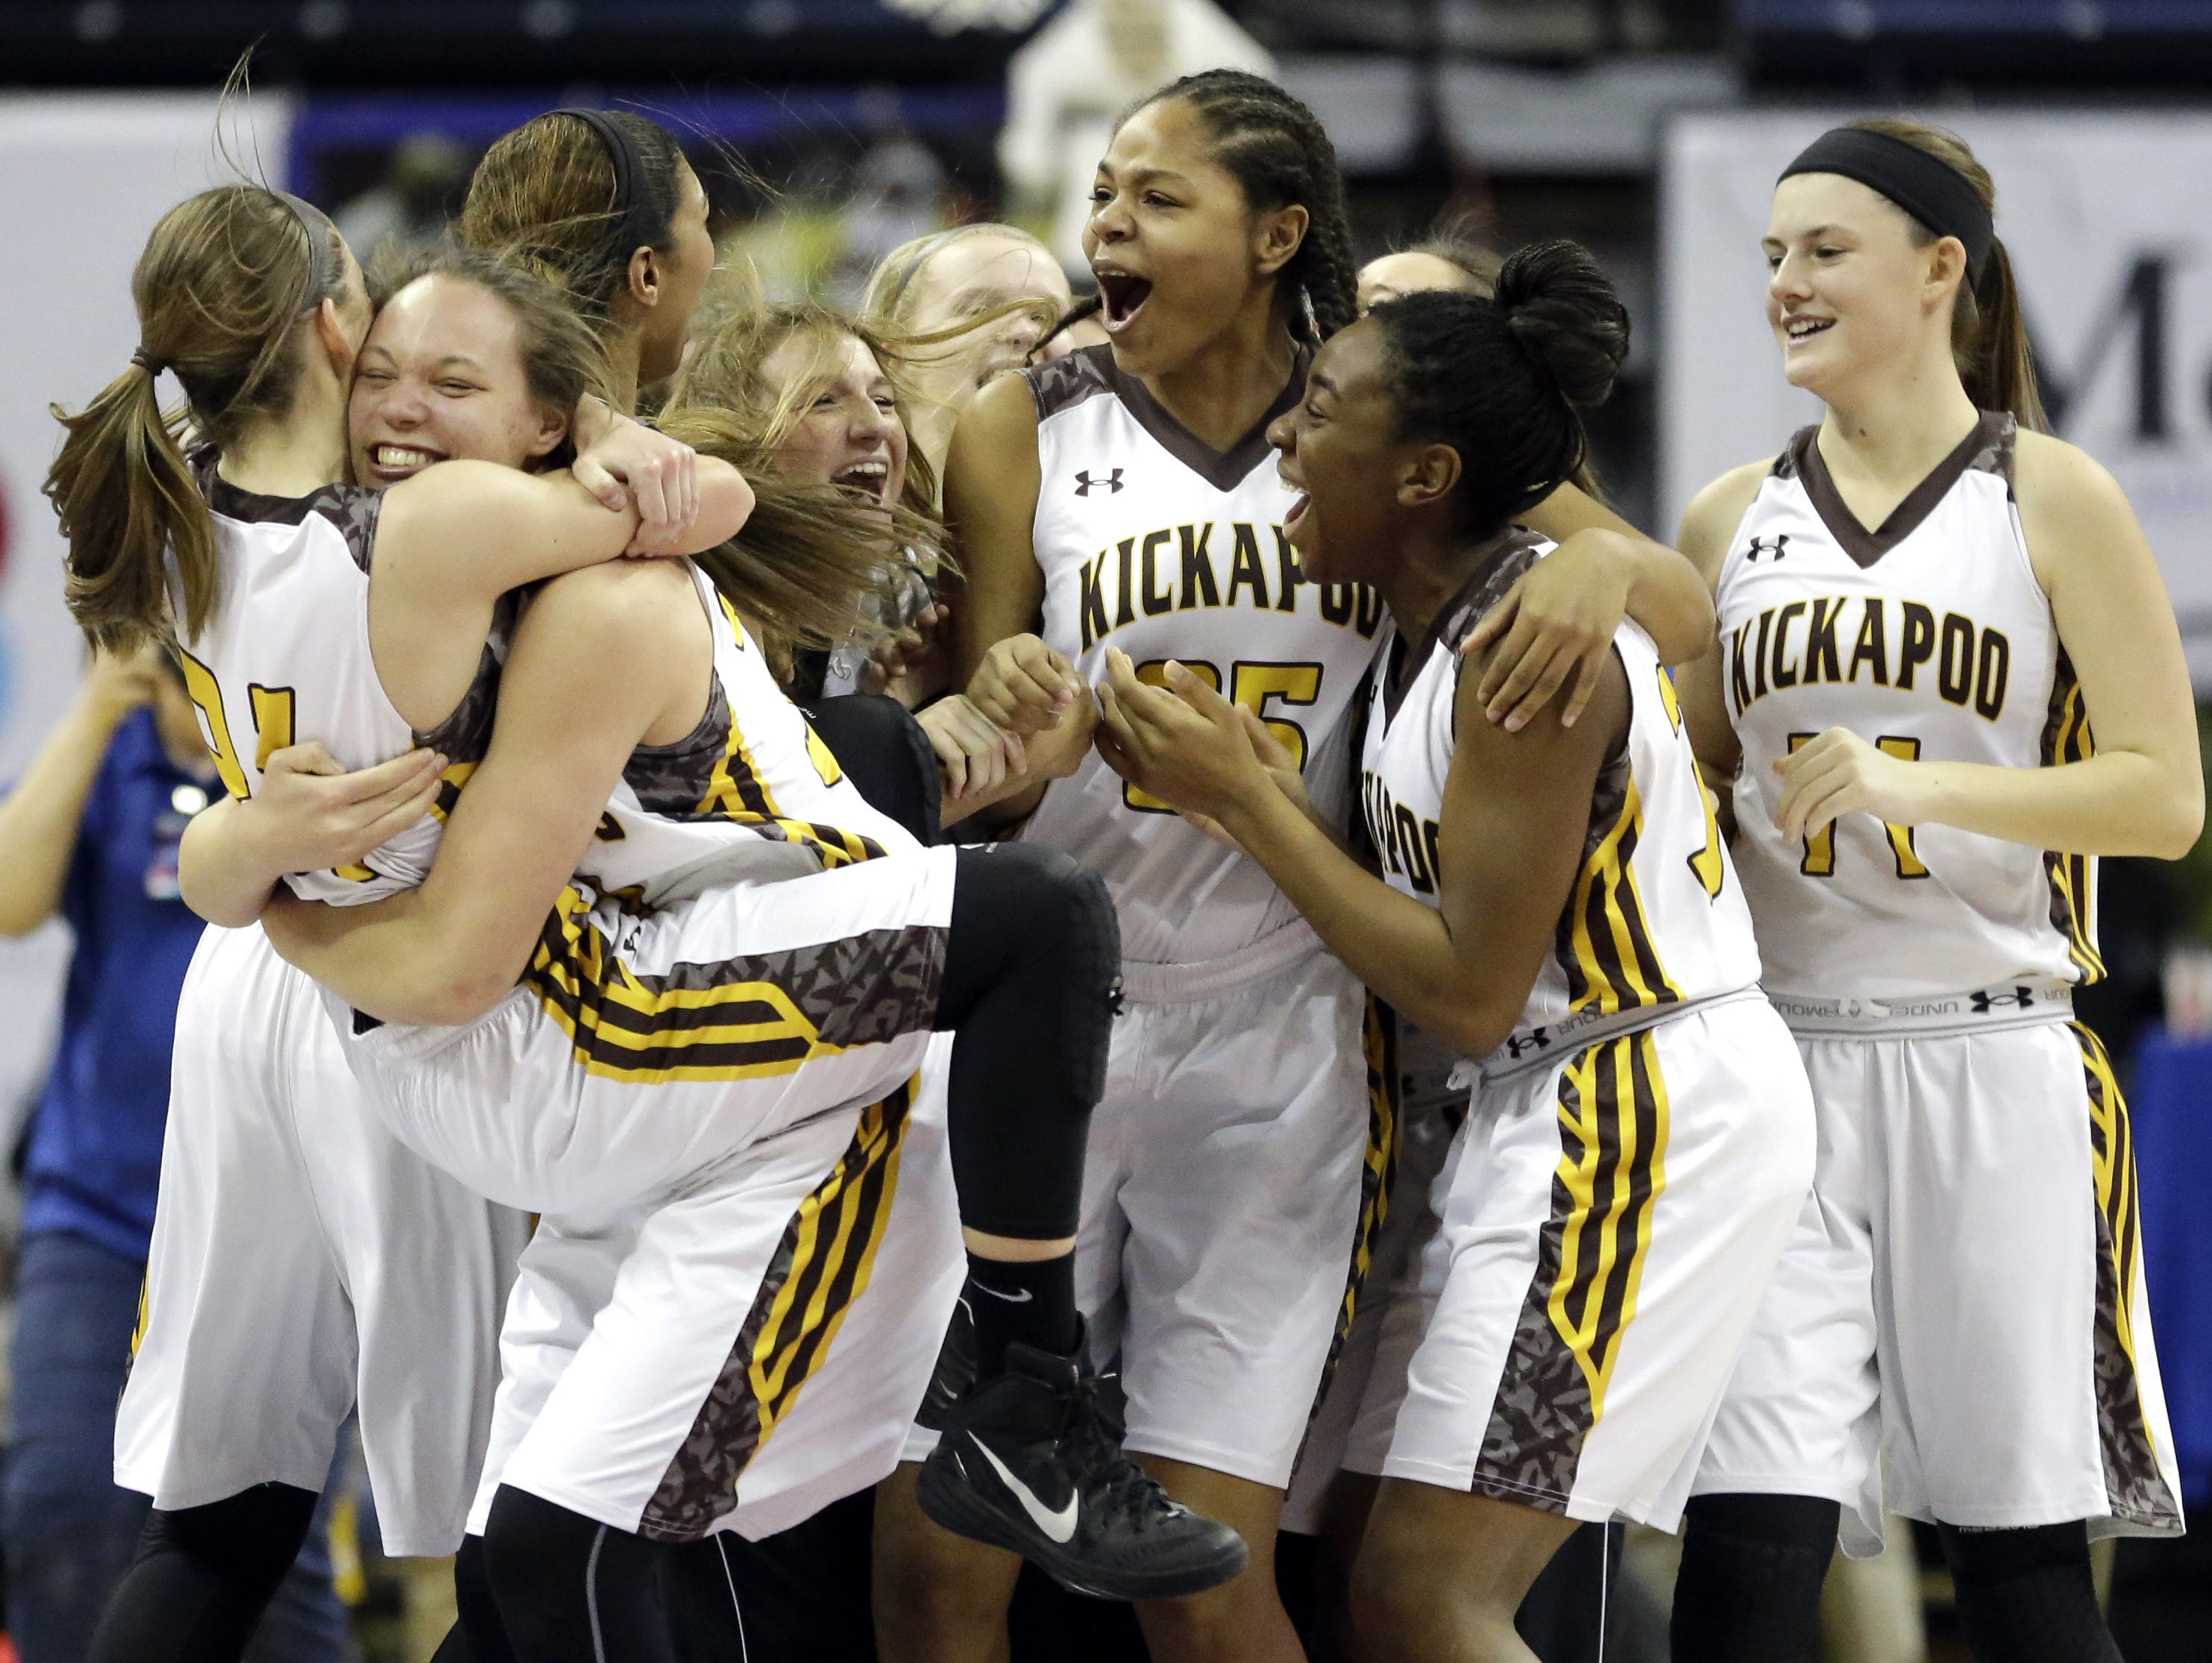 Kickapoo celebrates after defeating Kirkwood in the Class 5 state championship game.